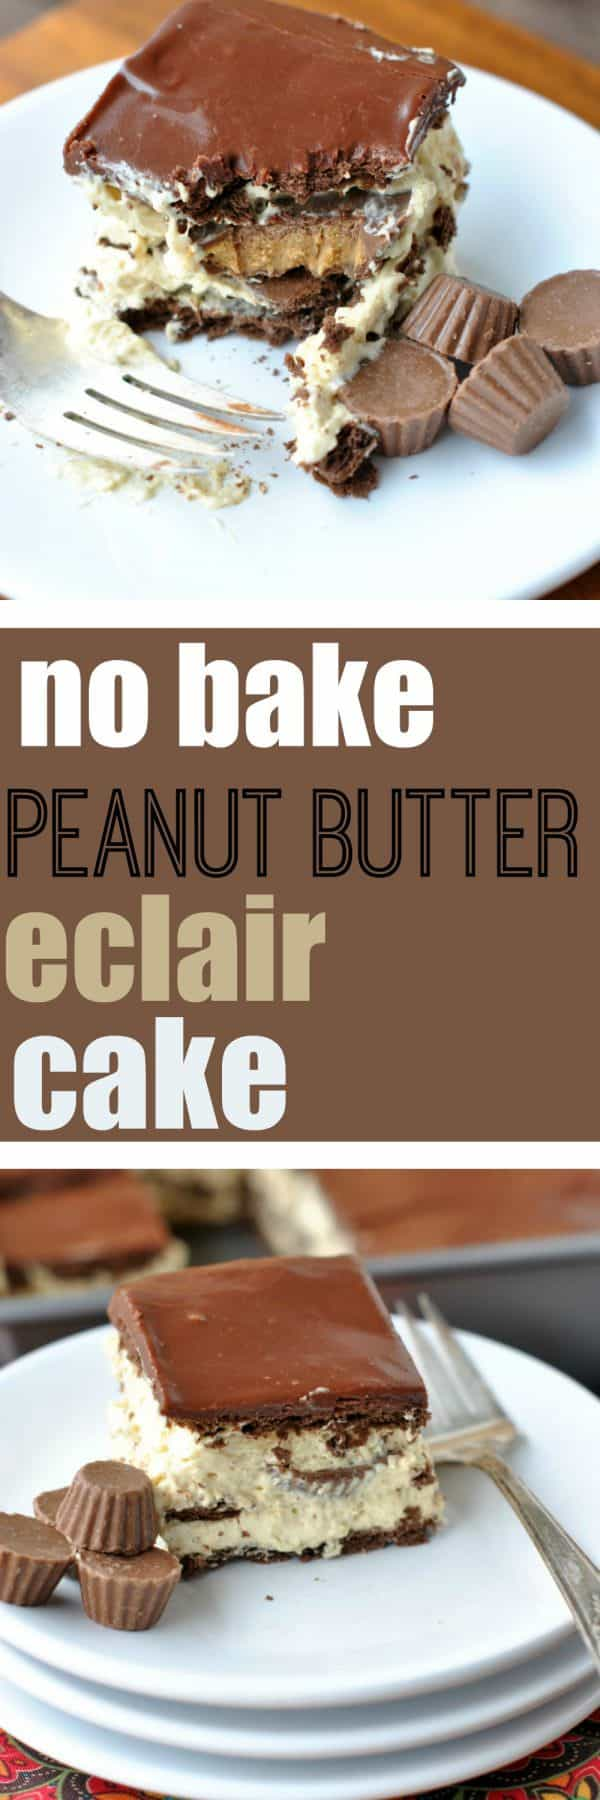 No Bake Peanut Butter Eclair Cake - Shugary Sweets